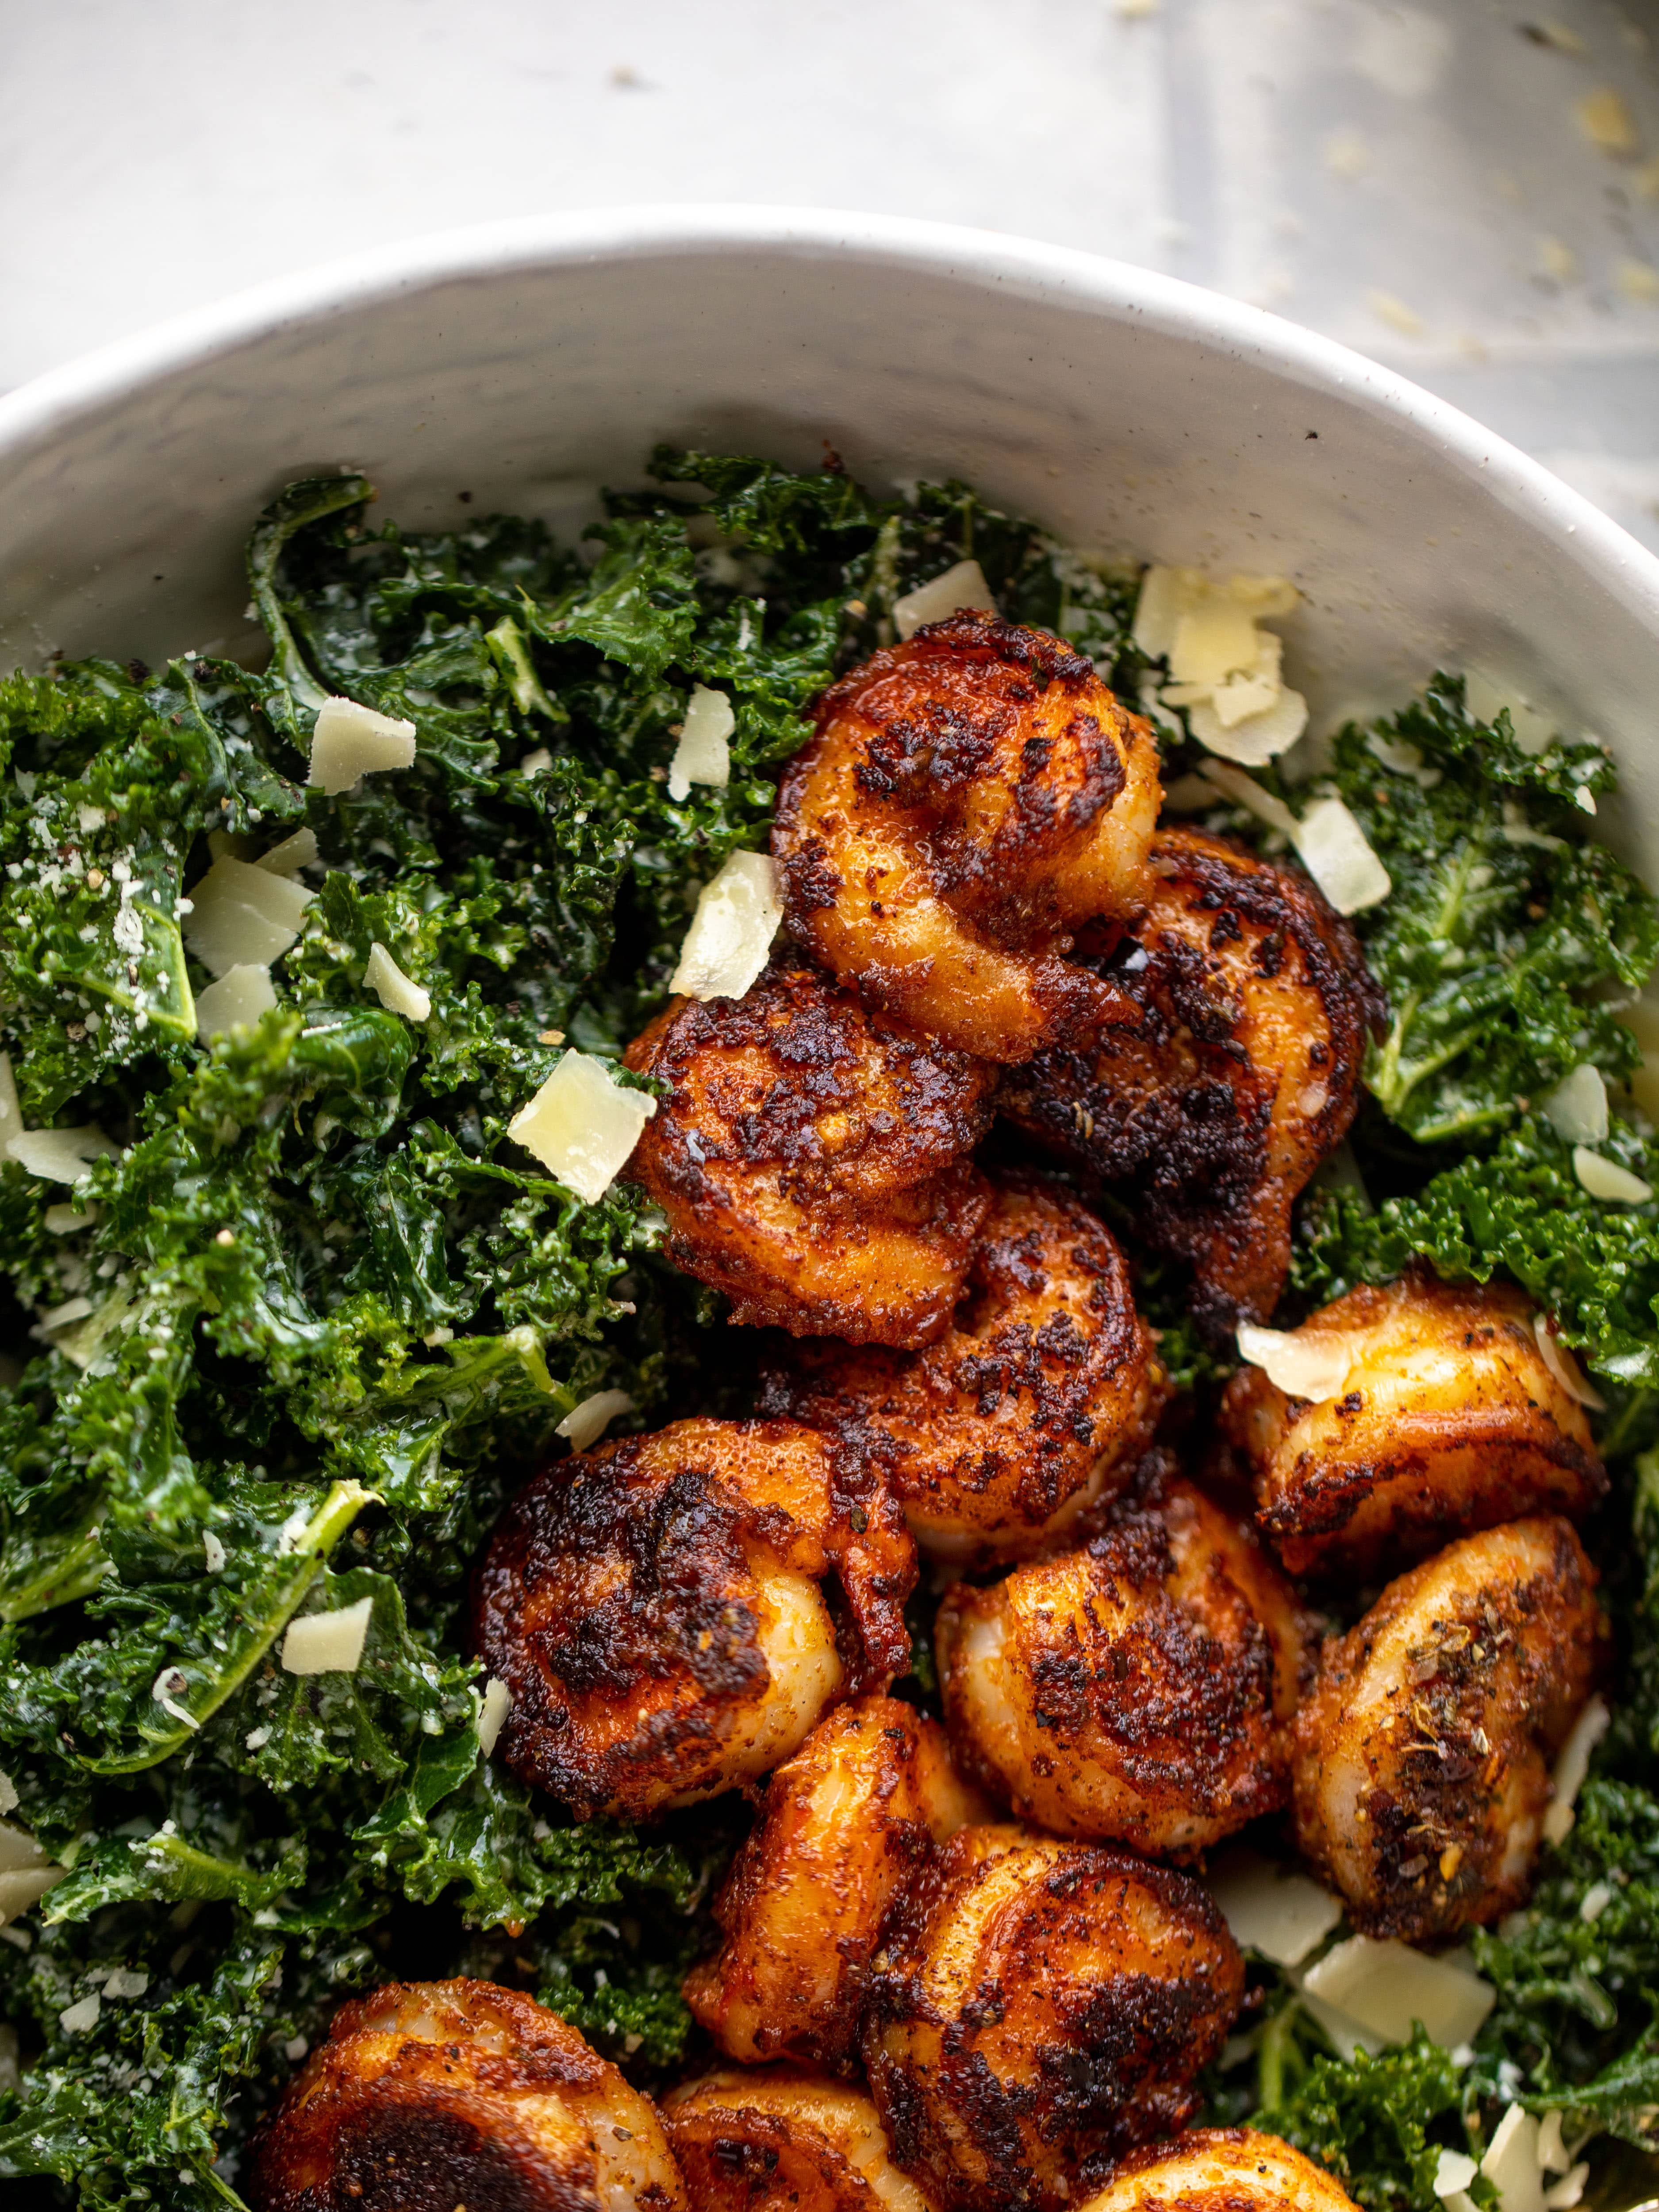 This blackened shrimp kale caesar is loaded with flavor. Spiced, buttery shrimp pan fried until golden, then thrown on kale caesar salad. Delish!